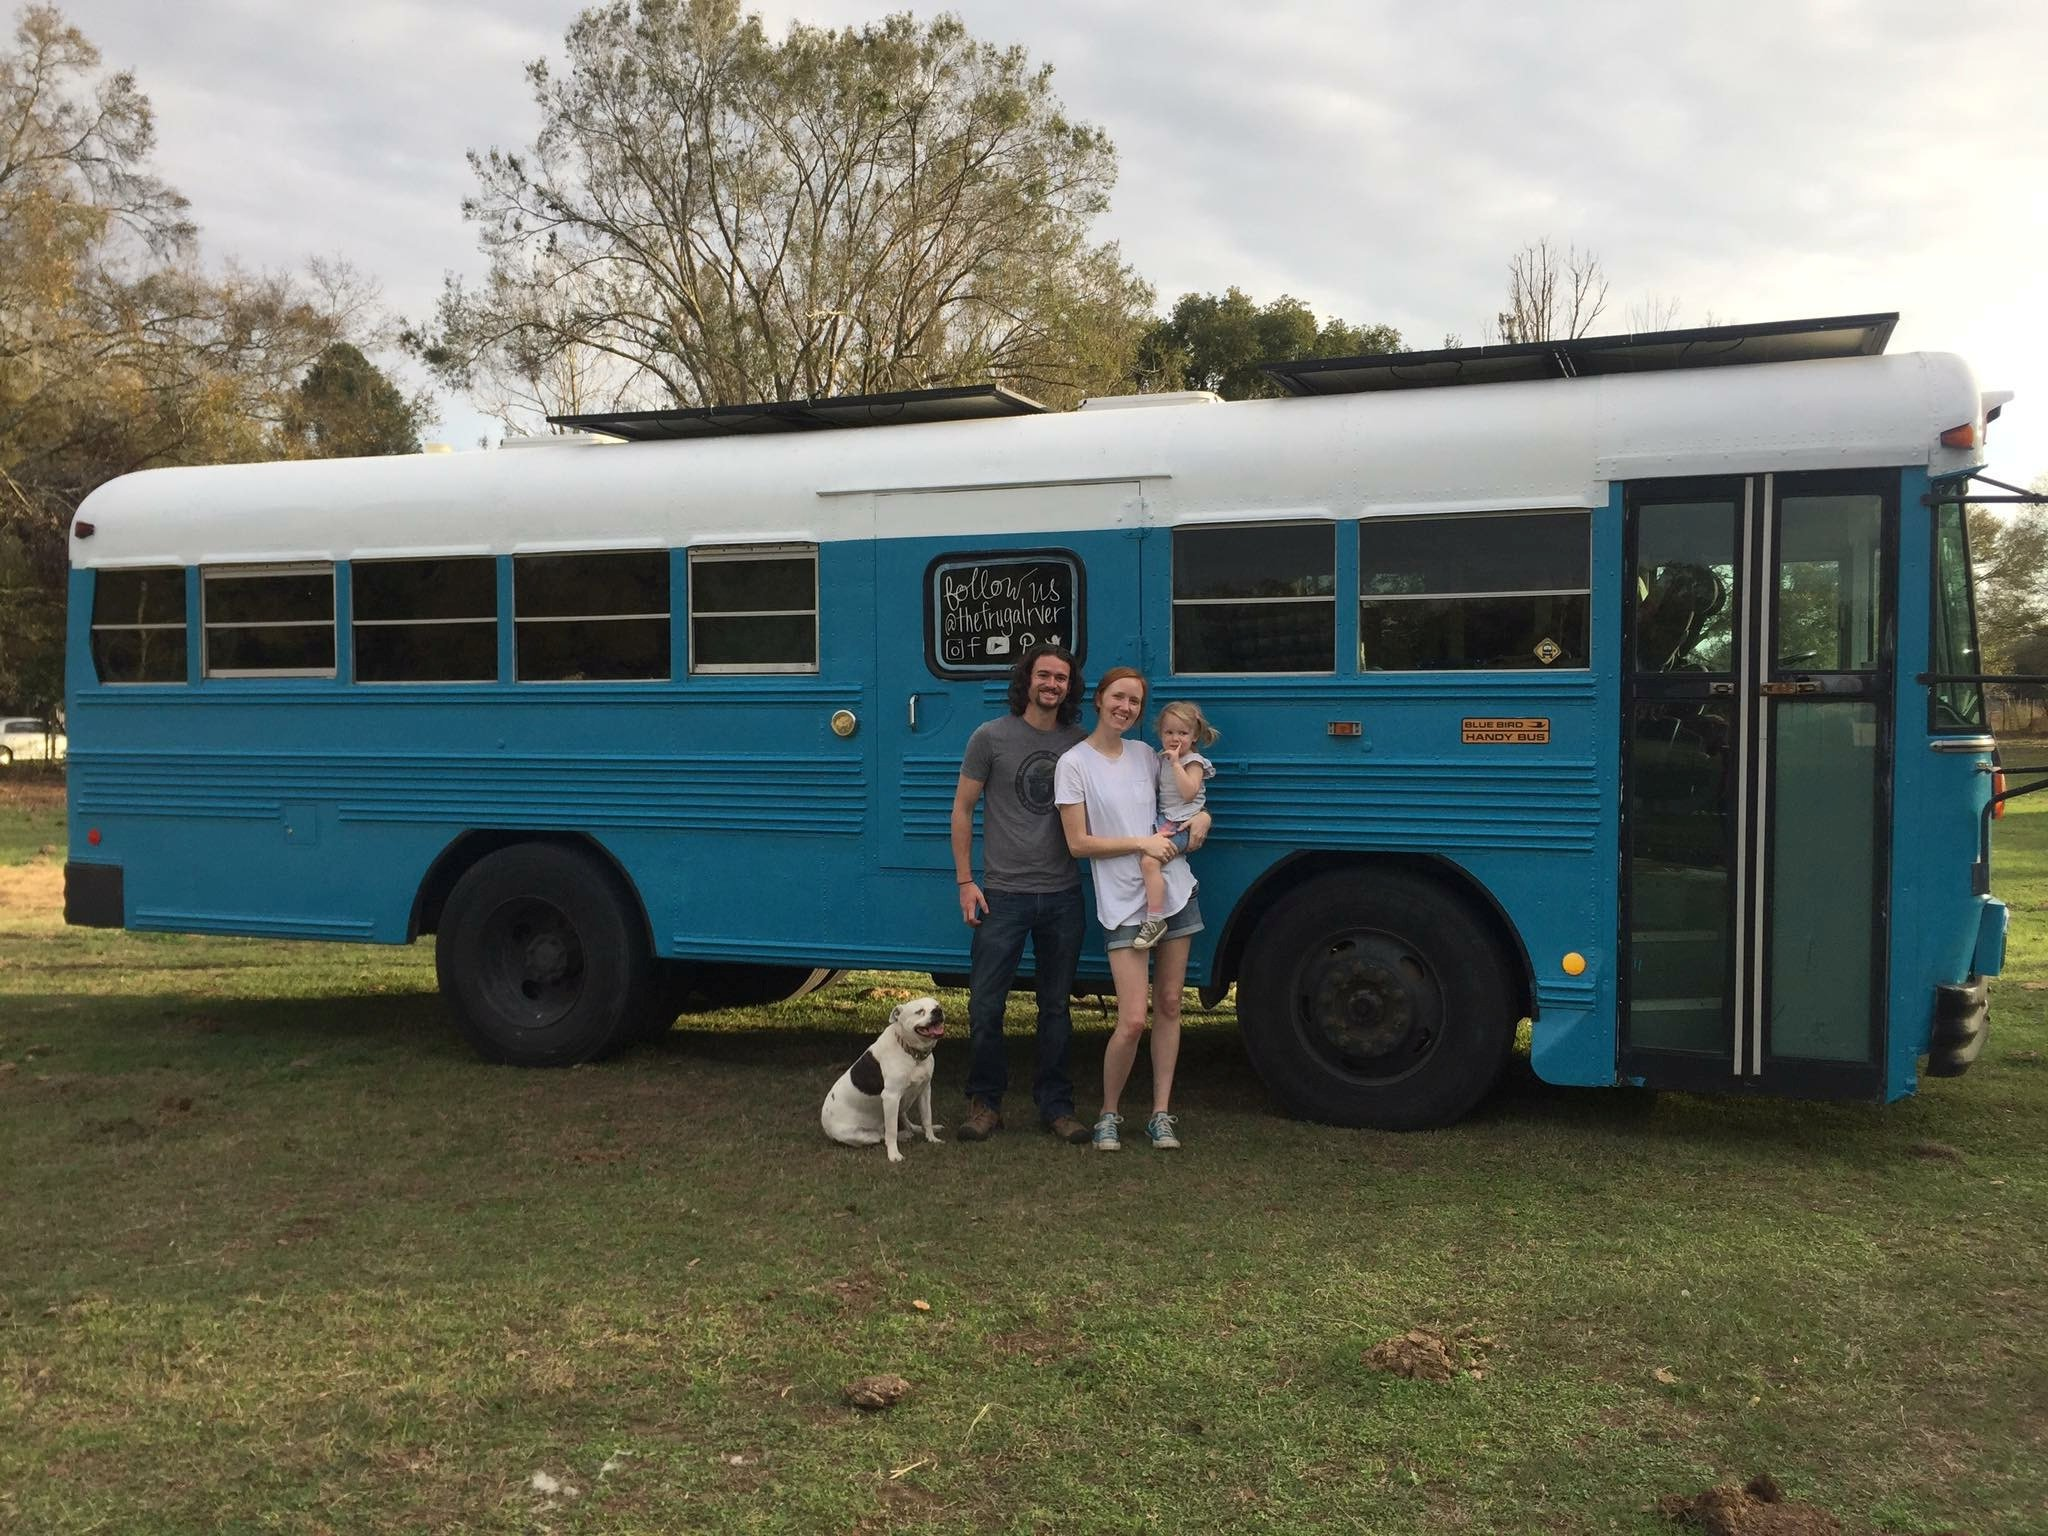 """Derek Cobia, Payton and Amy. See SWNS story BRNYbus; This family have dropped out of the rat race to live in an eco-friendly school bus. Derek Cobia, 33, and his wife Amy, 32, said their lives once revolved around mortgage payments and filling their four-bedroom home with things they ?didn?t need?. Now their days are spent on the open road - visiting 33 states in the last 18-months. """"Most of America is so glued to their phones, they don?t spend quality family time together,"""" said Derek. """"I never want to go back to our old lifestyle. It?s the greatest thing we have ever done in our relationship,"""" agreed Amy. The couple have invested $15,000 to renovate their bus with solar panels, a composting toilet and a bath tub big enough for two people. The 28ft by 8ft interior also contains a working kitchen, a wood-burning stove and fold up beds. The journey began in 2015 when they sold their house in Atlanta, Georgia, and moved to a local campsite with their daughter Payson, three, where they lived in a $65,000 RV for a year."""